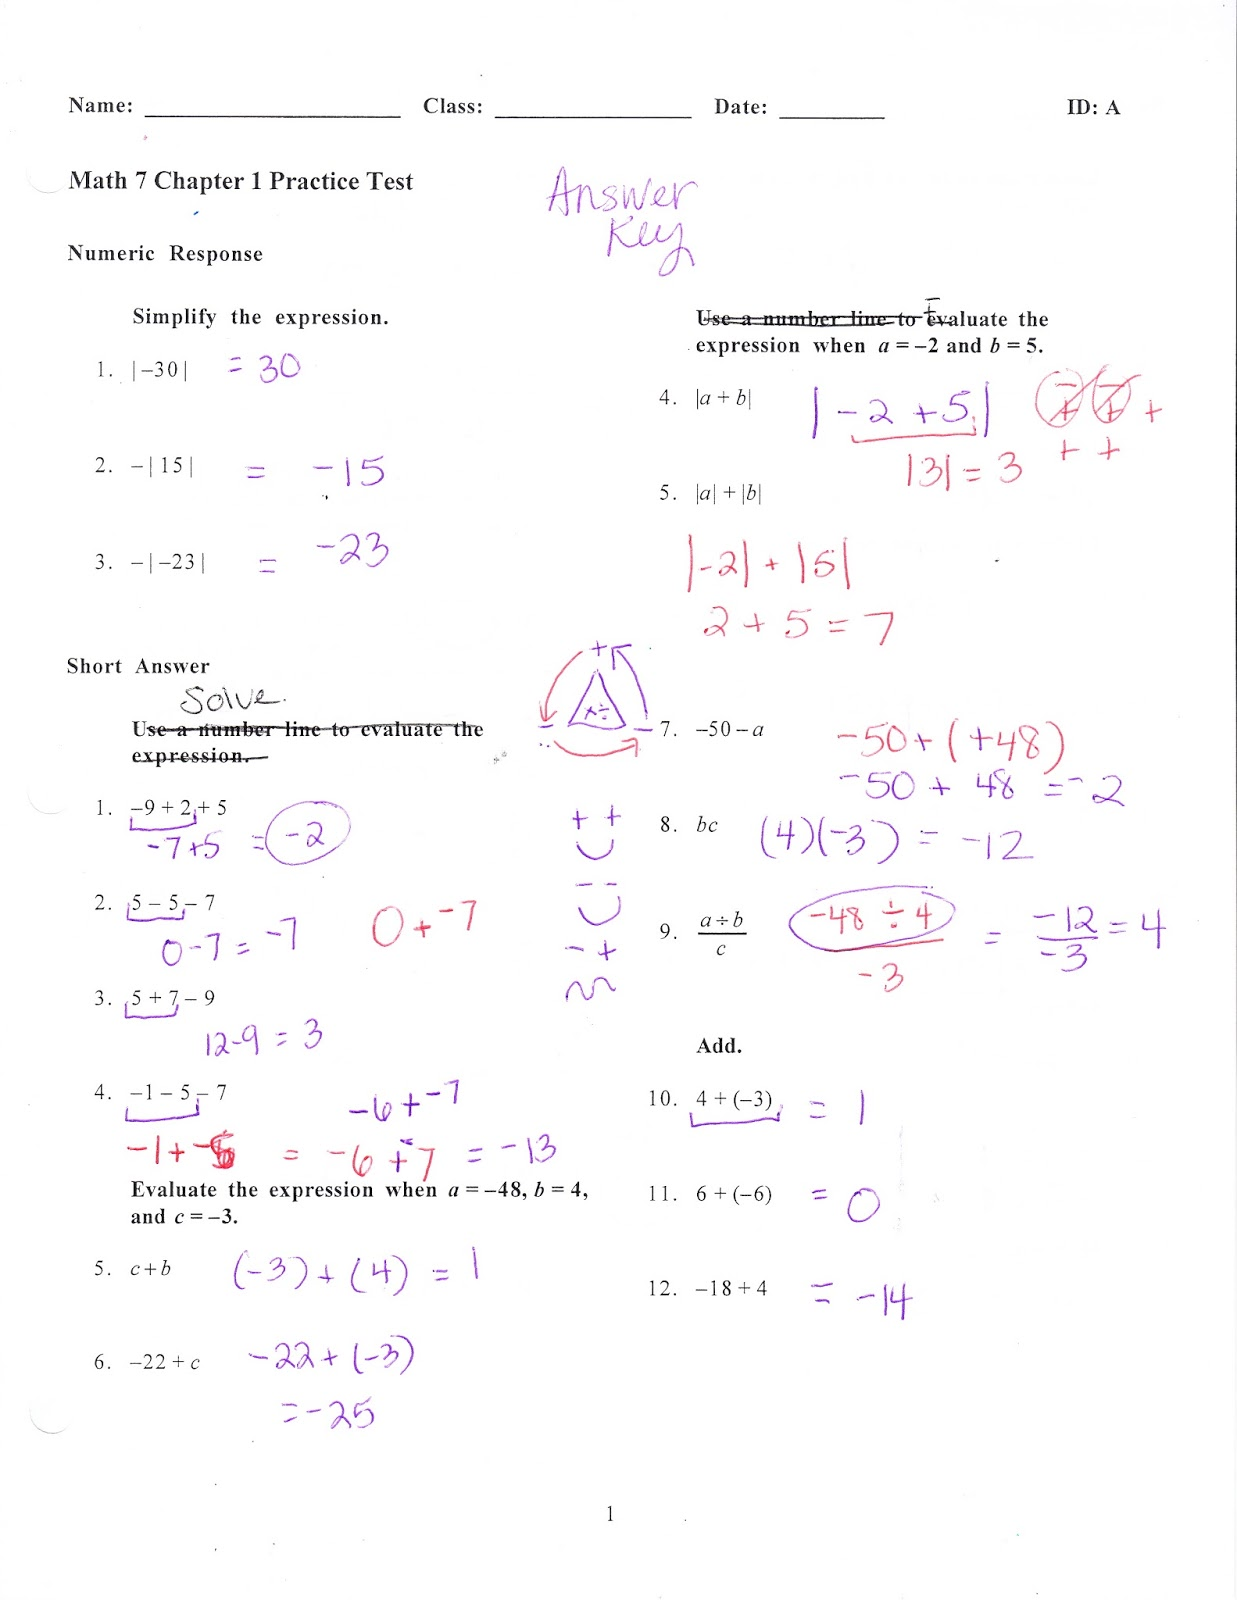 Ms Jean S Classroom Blog Math 7 Chapter 1 Practice Test Answers